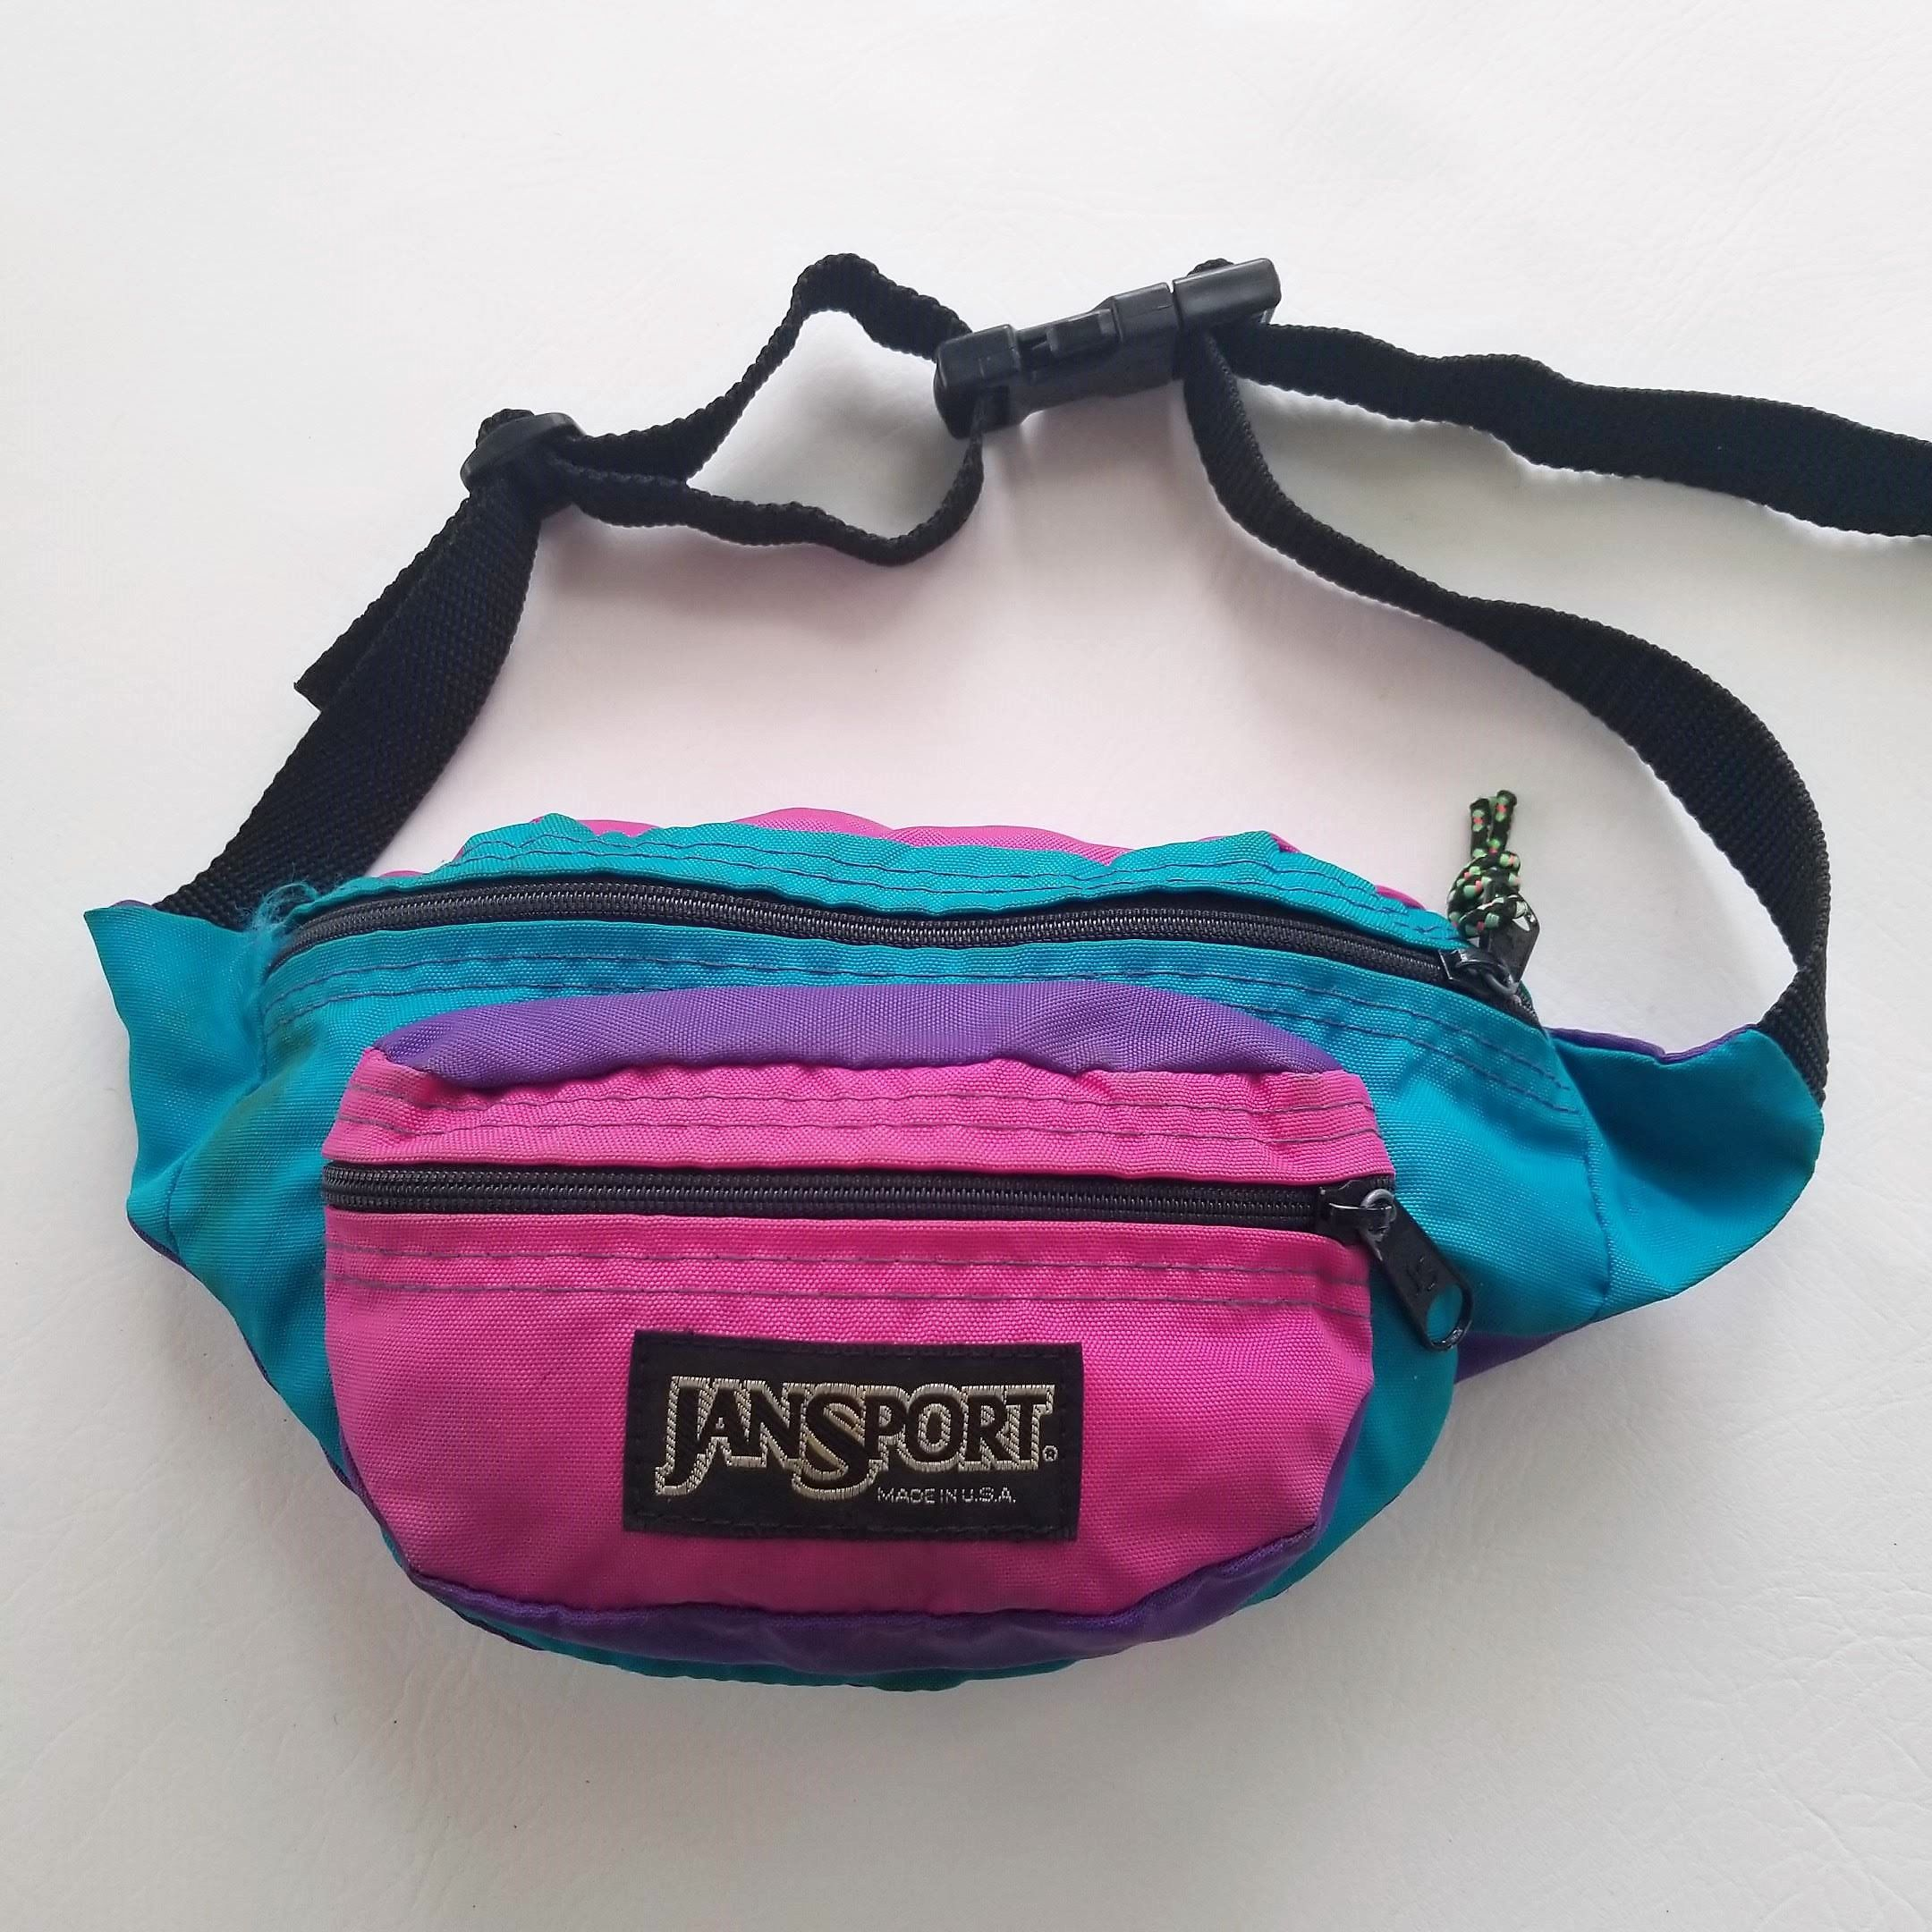 5197f357c073 JanSport Vintage Fanny Pack 80s 90s Pink Purple Teal Pouch Hip Waist Sack  Bag by TraSheeWomen on Etsy #vintage #80s #90s #jansport #fannypack #hipsack